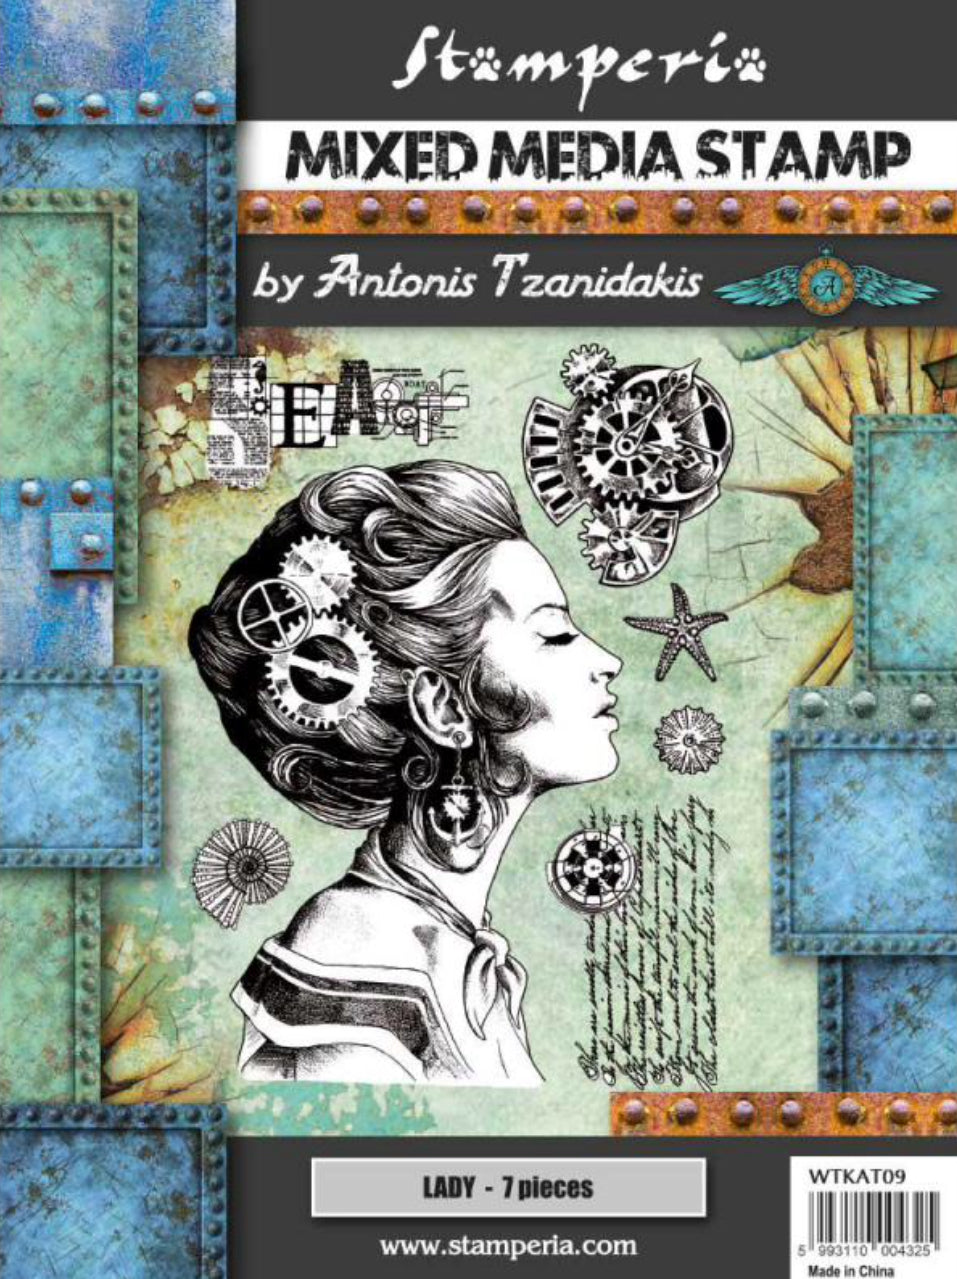 Stamperia Mixed Media Stamp Set by Antonis Tzanidakis - Lady WTKAT09 - 15cm x 20cm